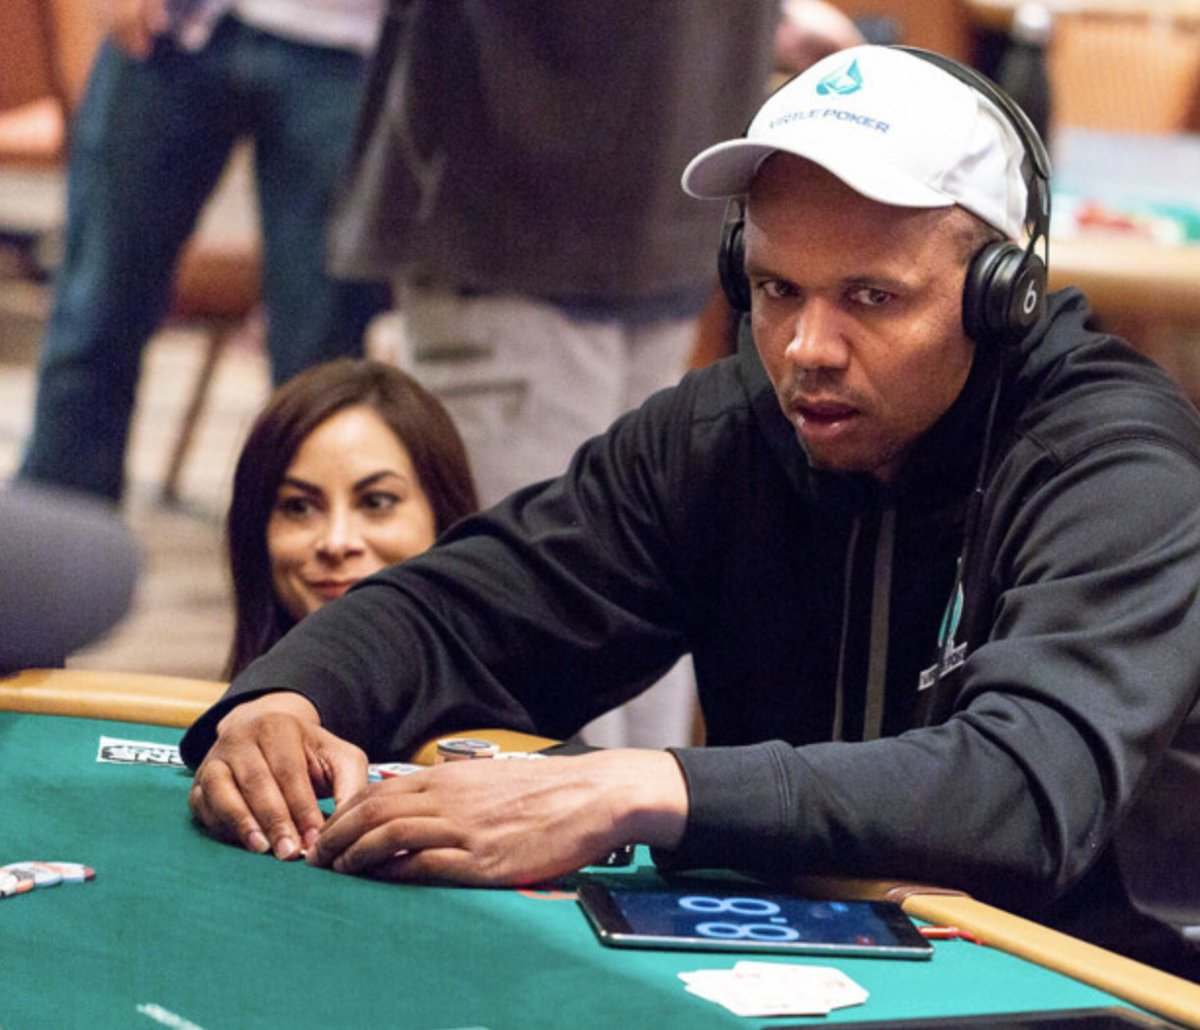 Phil Ivey Heating Up at WSOP Europe, Bags €25,500 Platinum High Roller Chip Lead